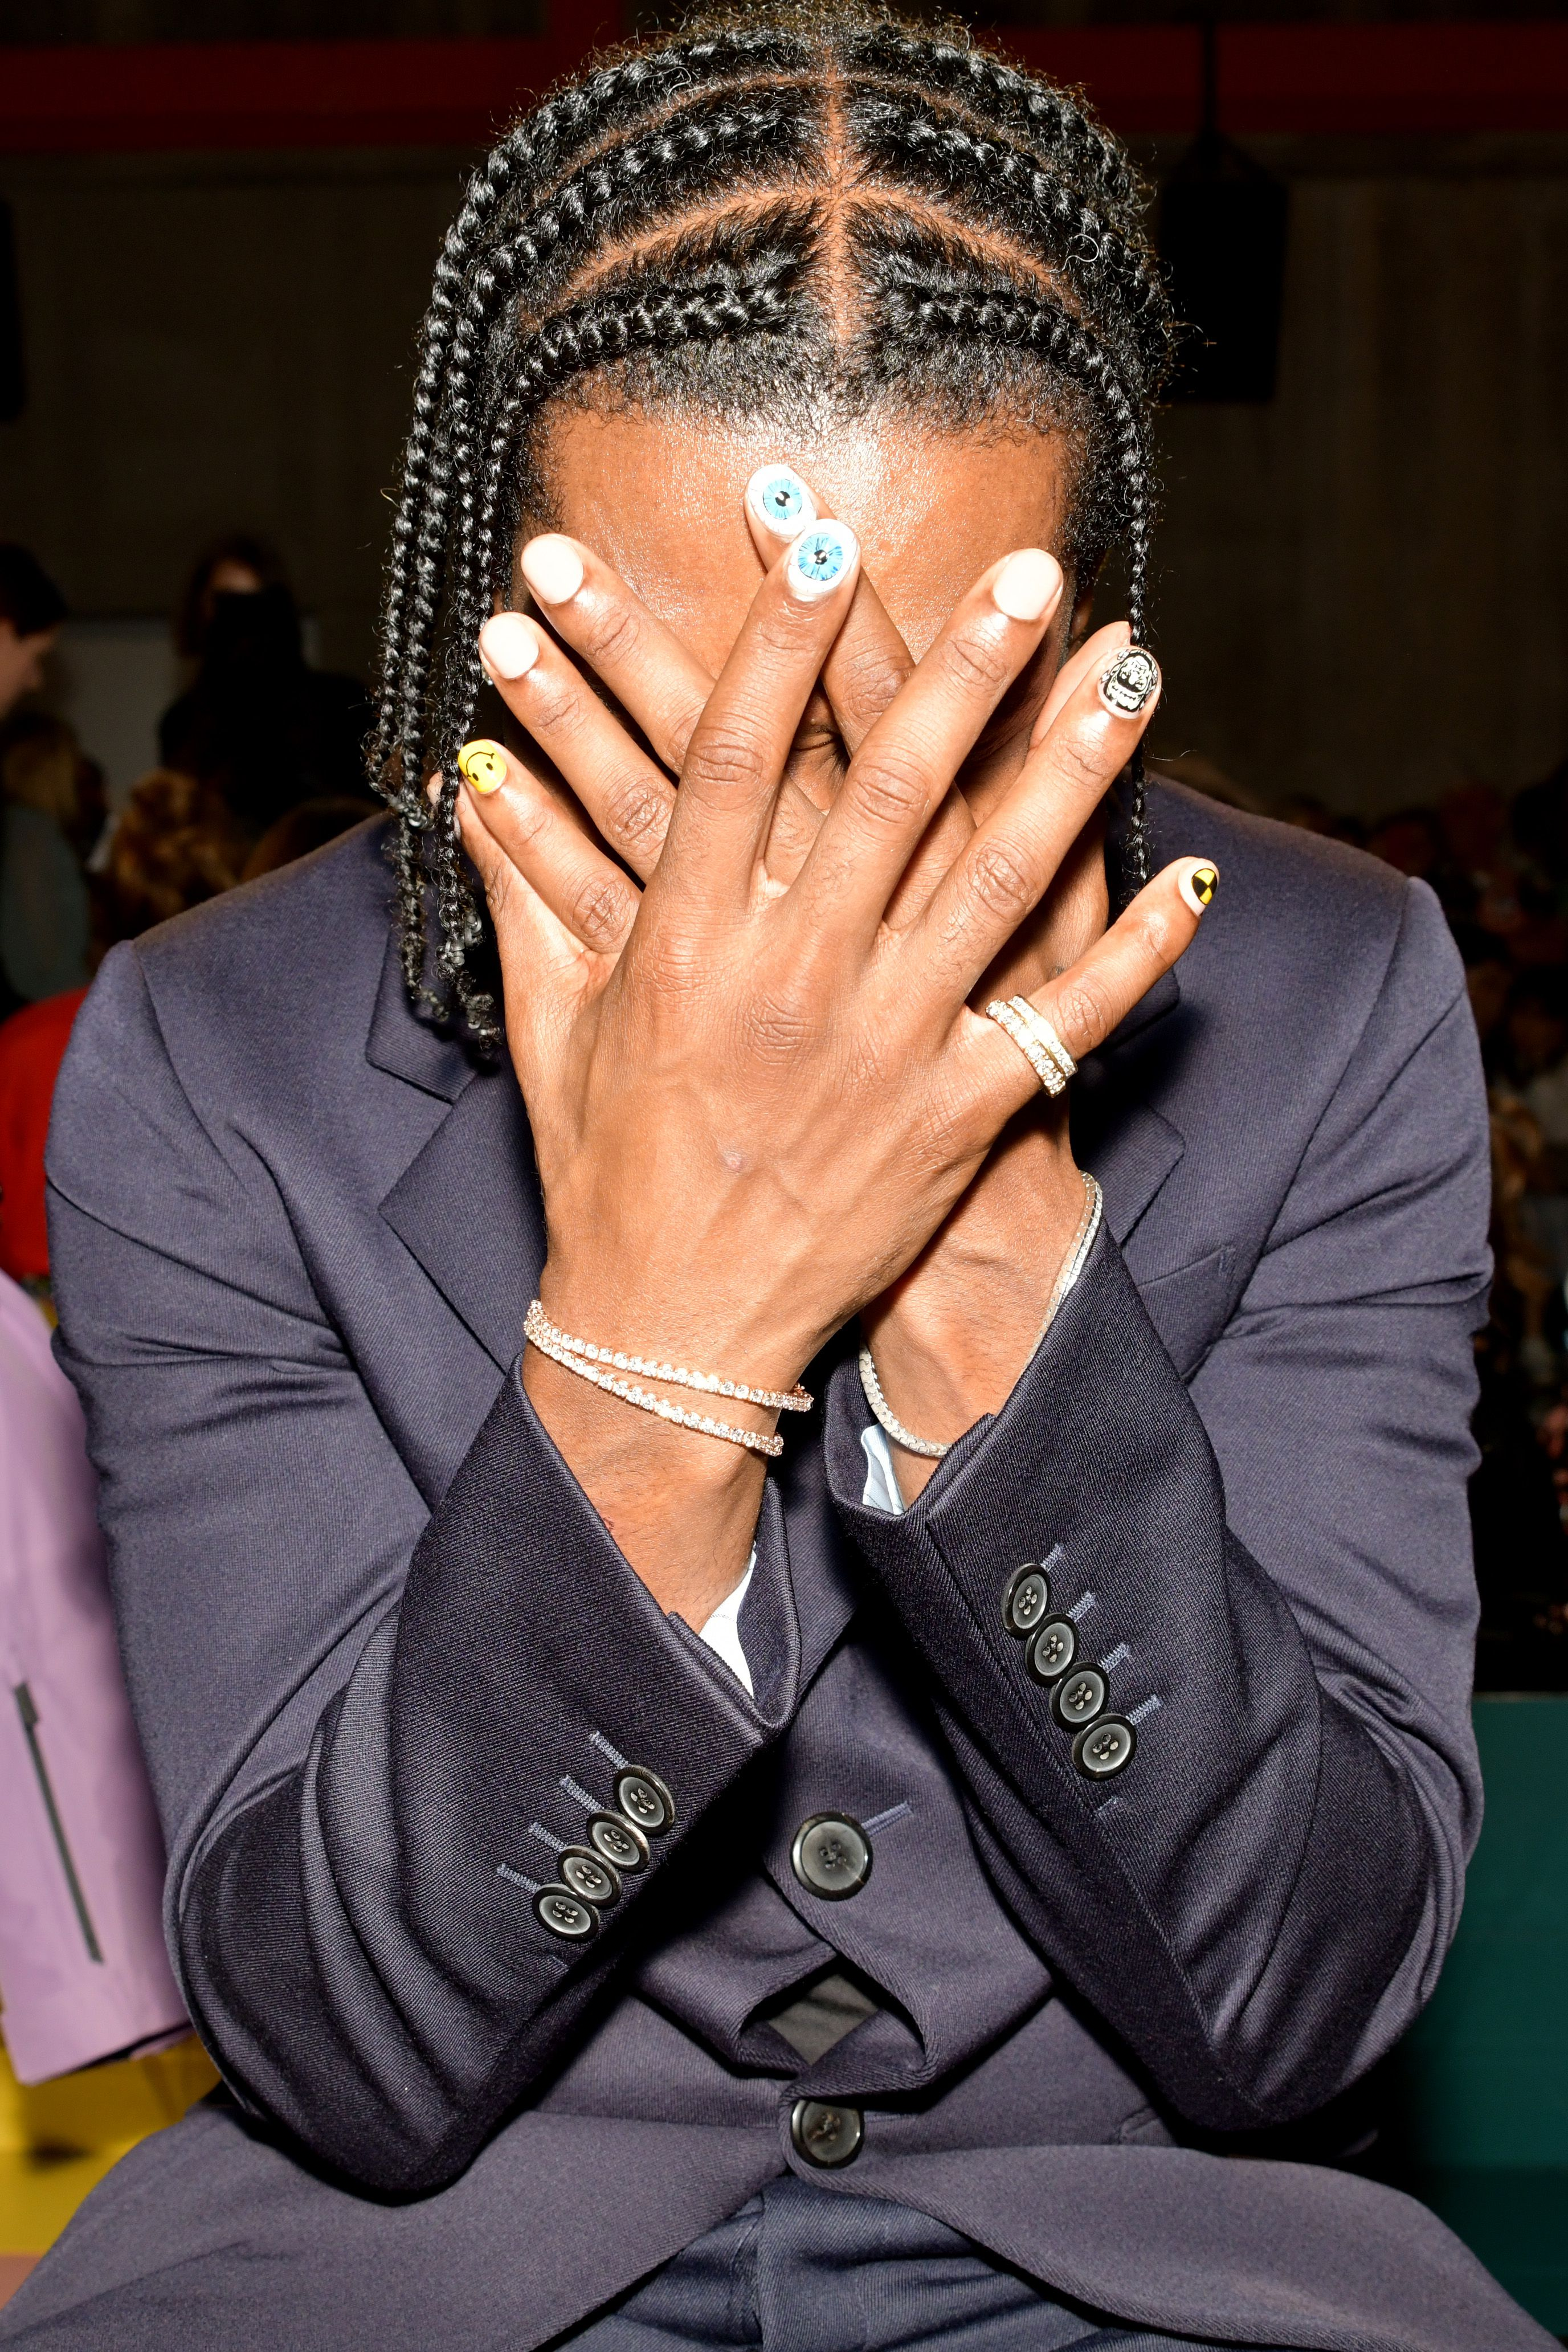 ASAP Rocky in the front rowPrada show, Front Row, Spring Summer 2020, Milan Fashion Week, Italy - 18 Sep 2019